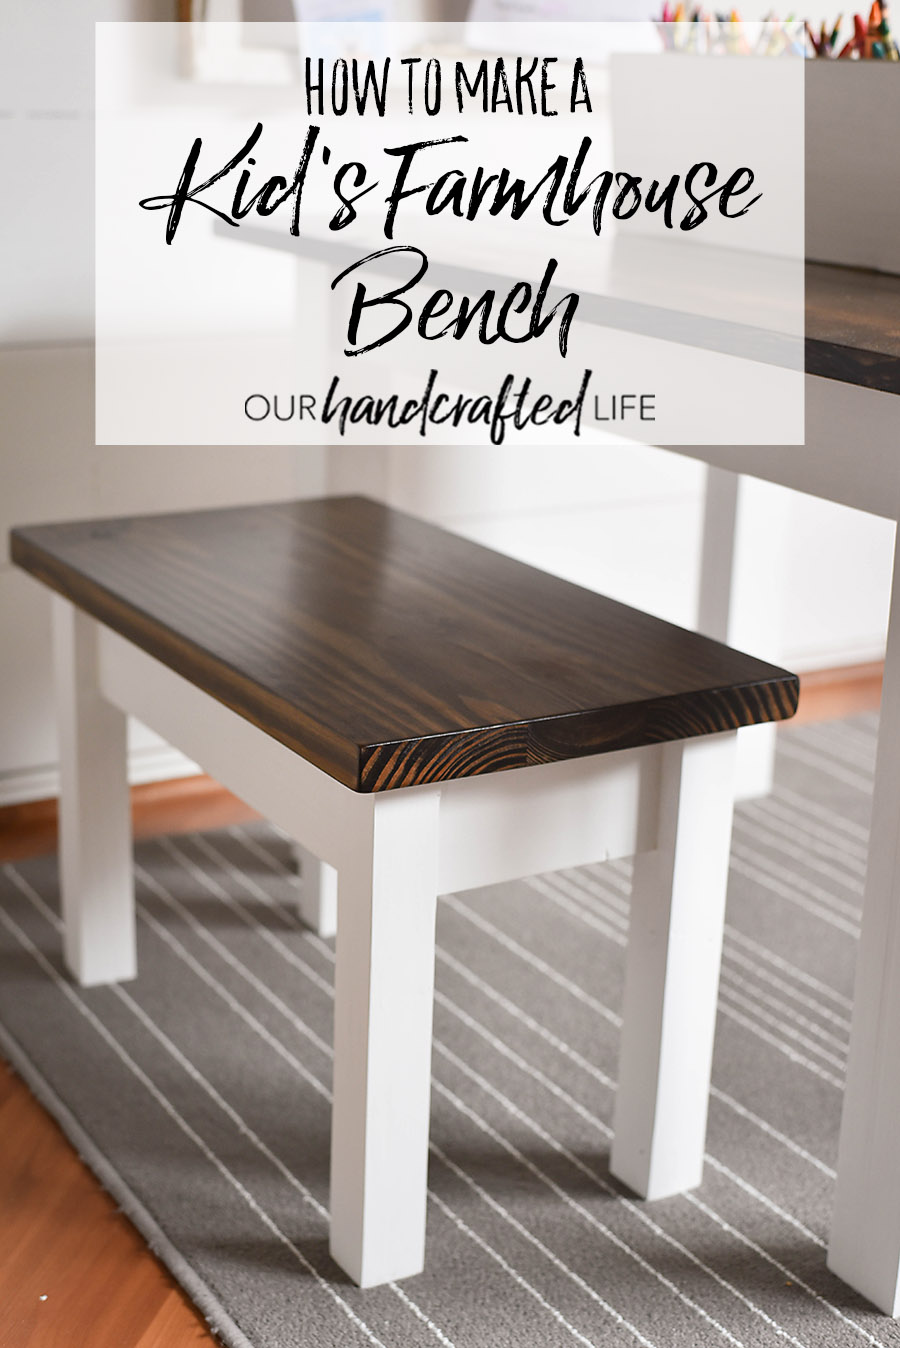 Awe Inspiring How To Make A Kids Farmhouse Bench Our Handcrafted Life Short Links Chair Design For Home Short Linksinfo